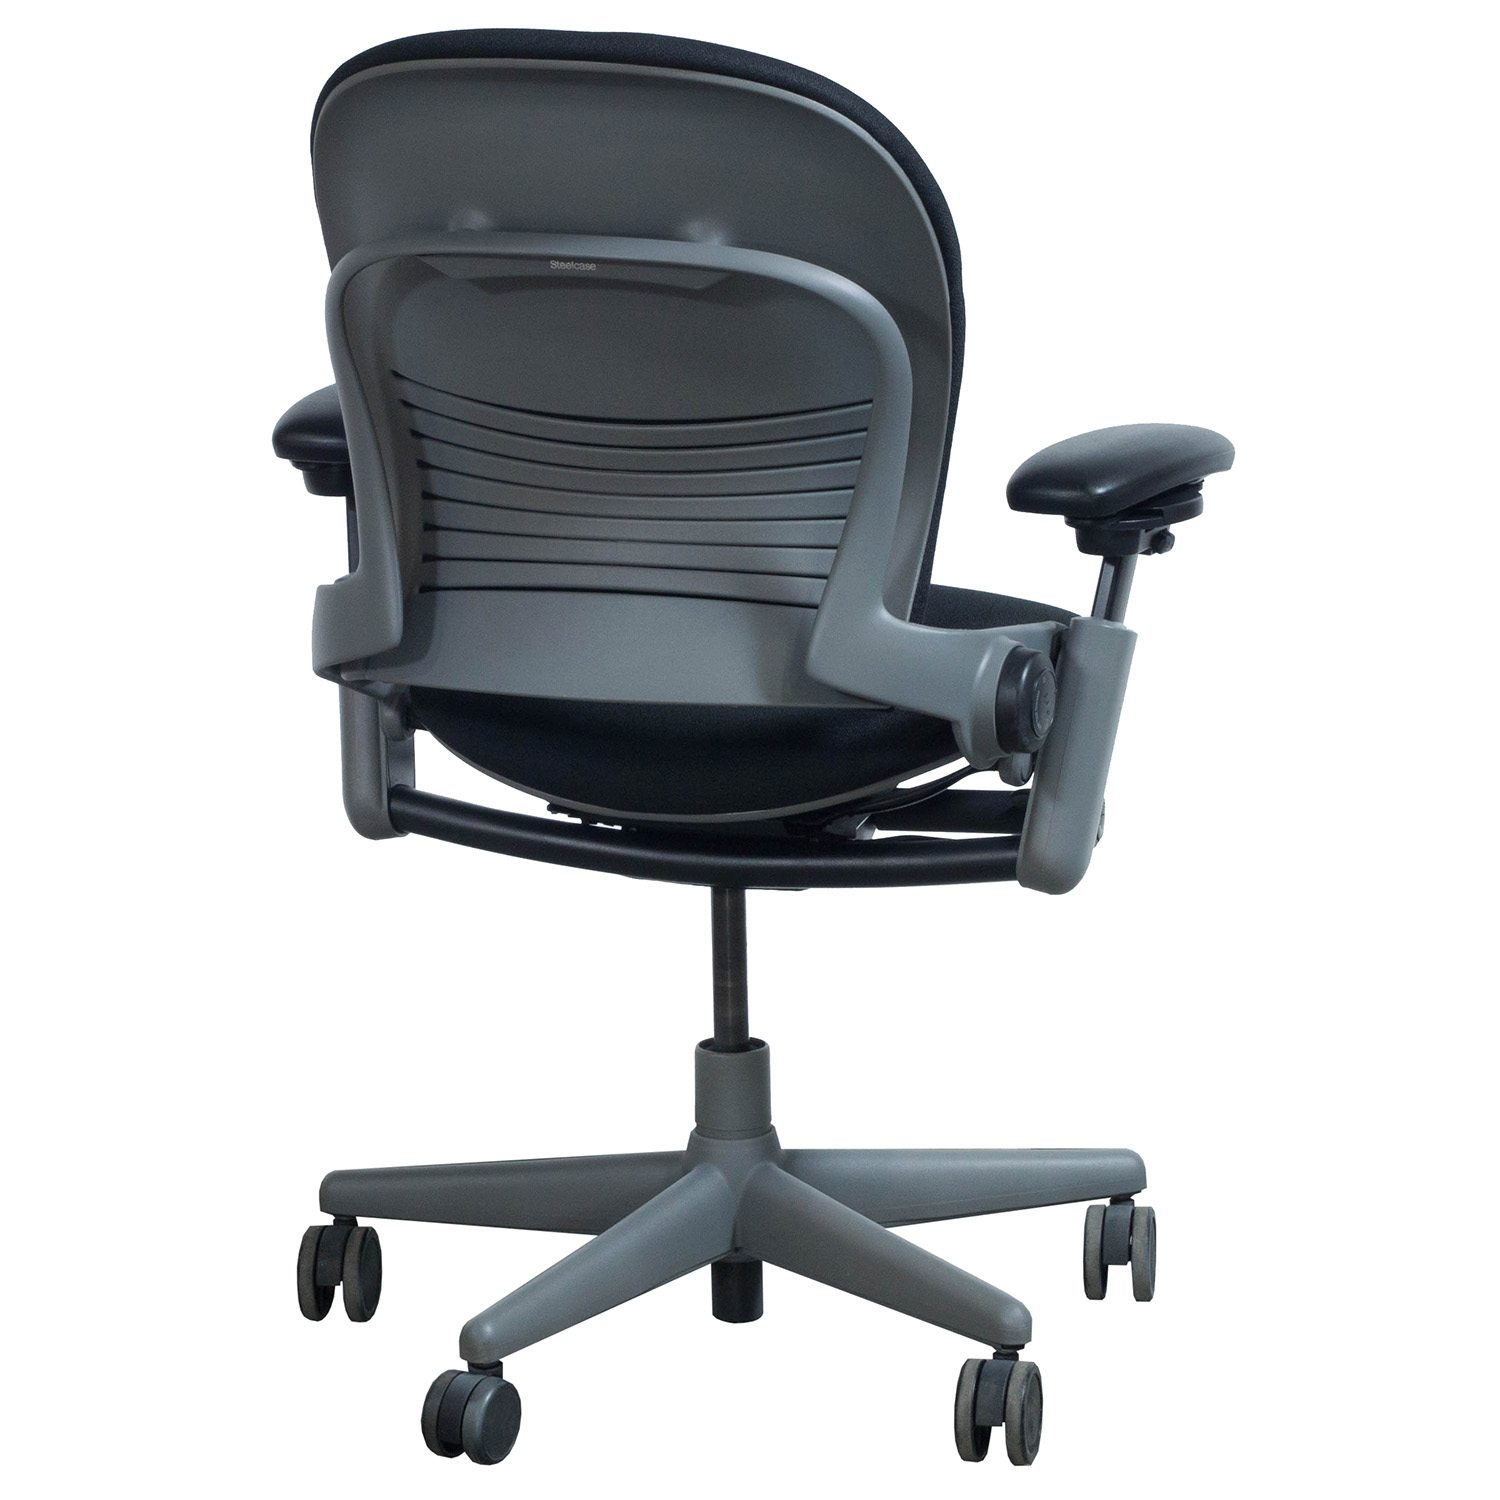 steelcase leap chair v2 review gaming lounge